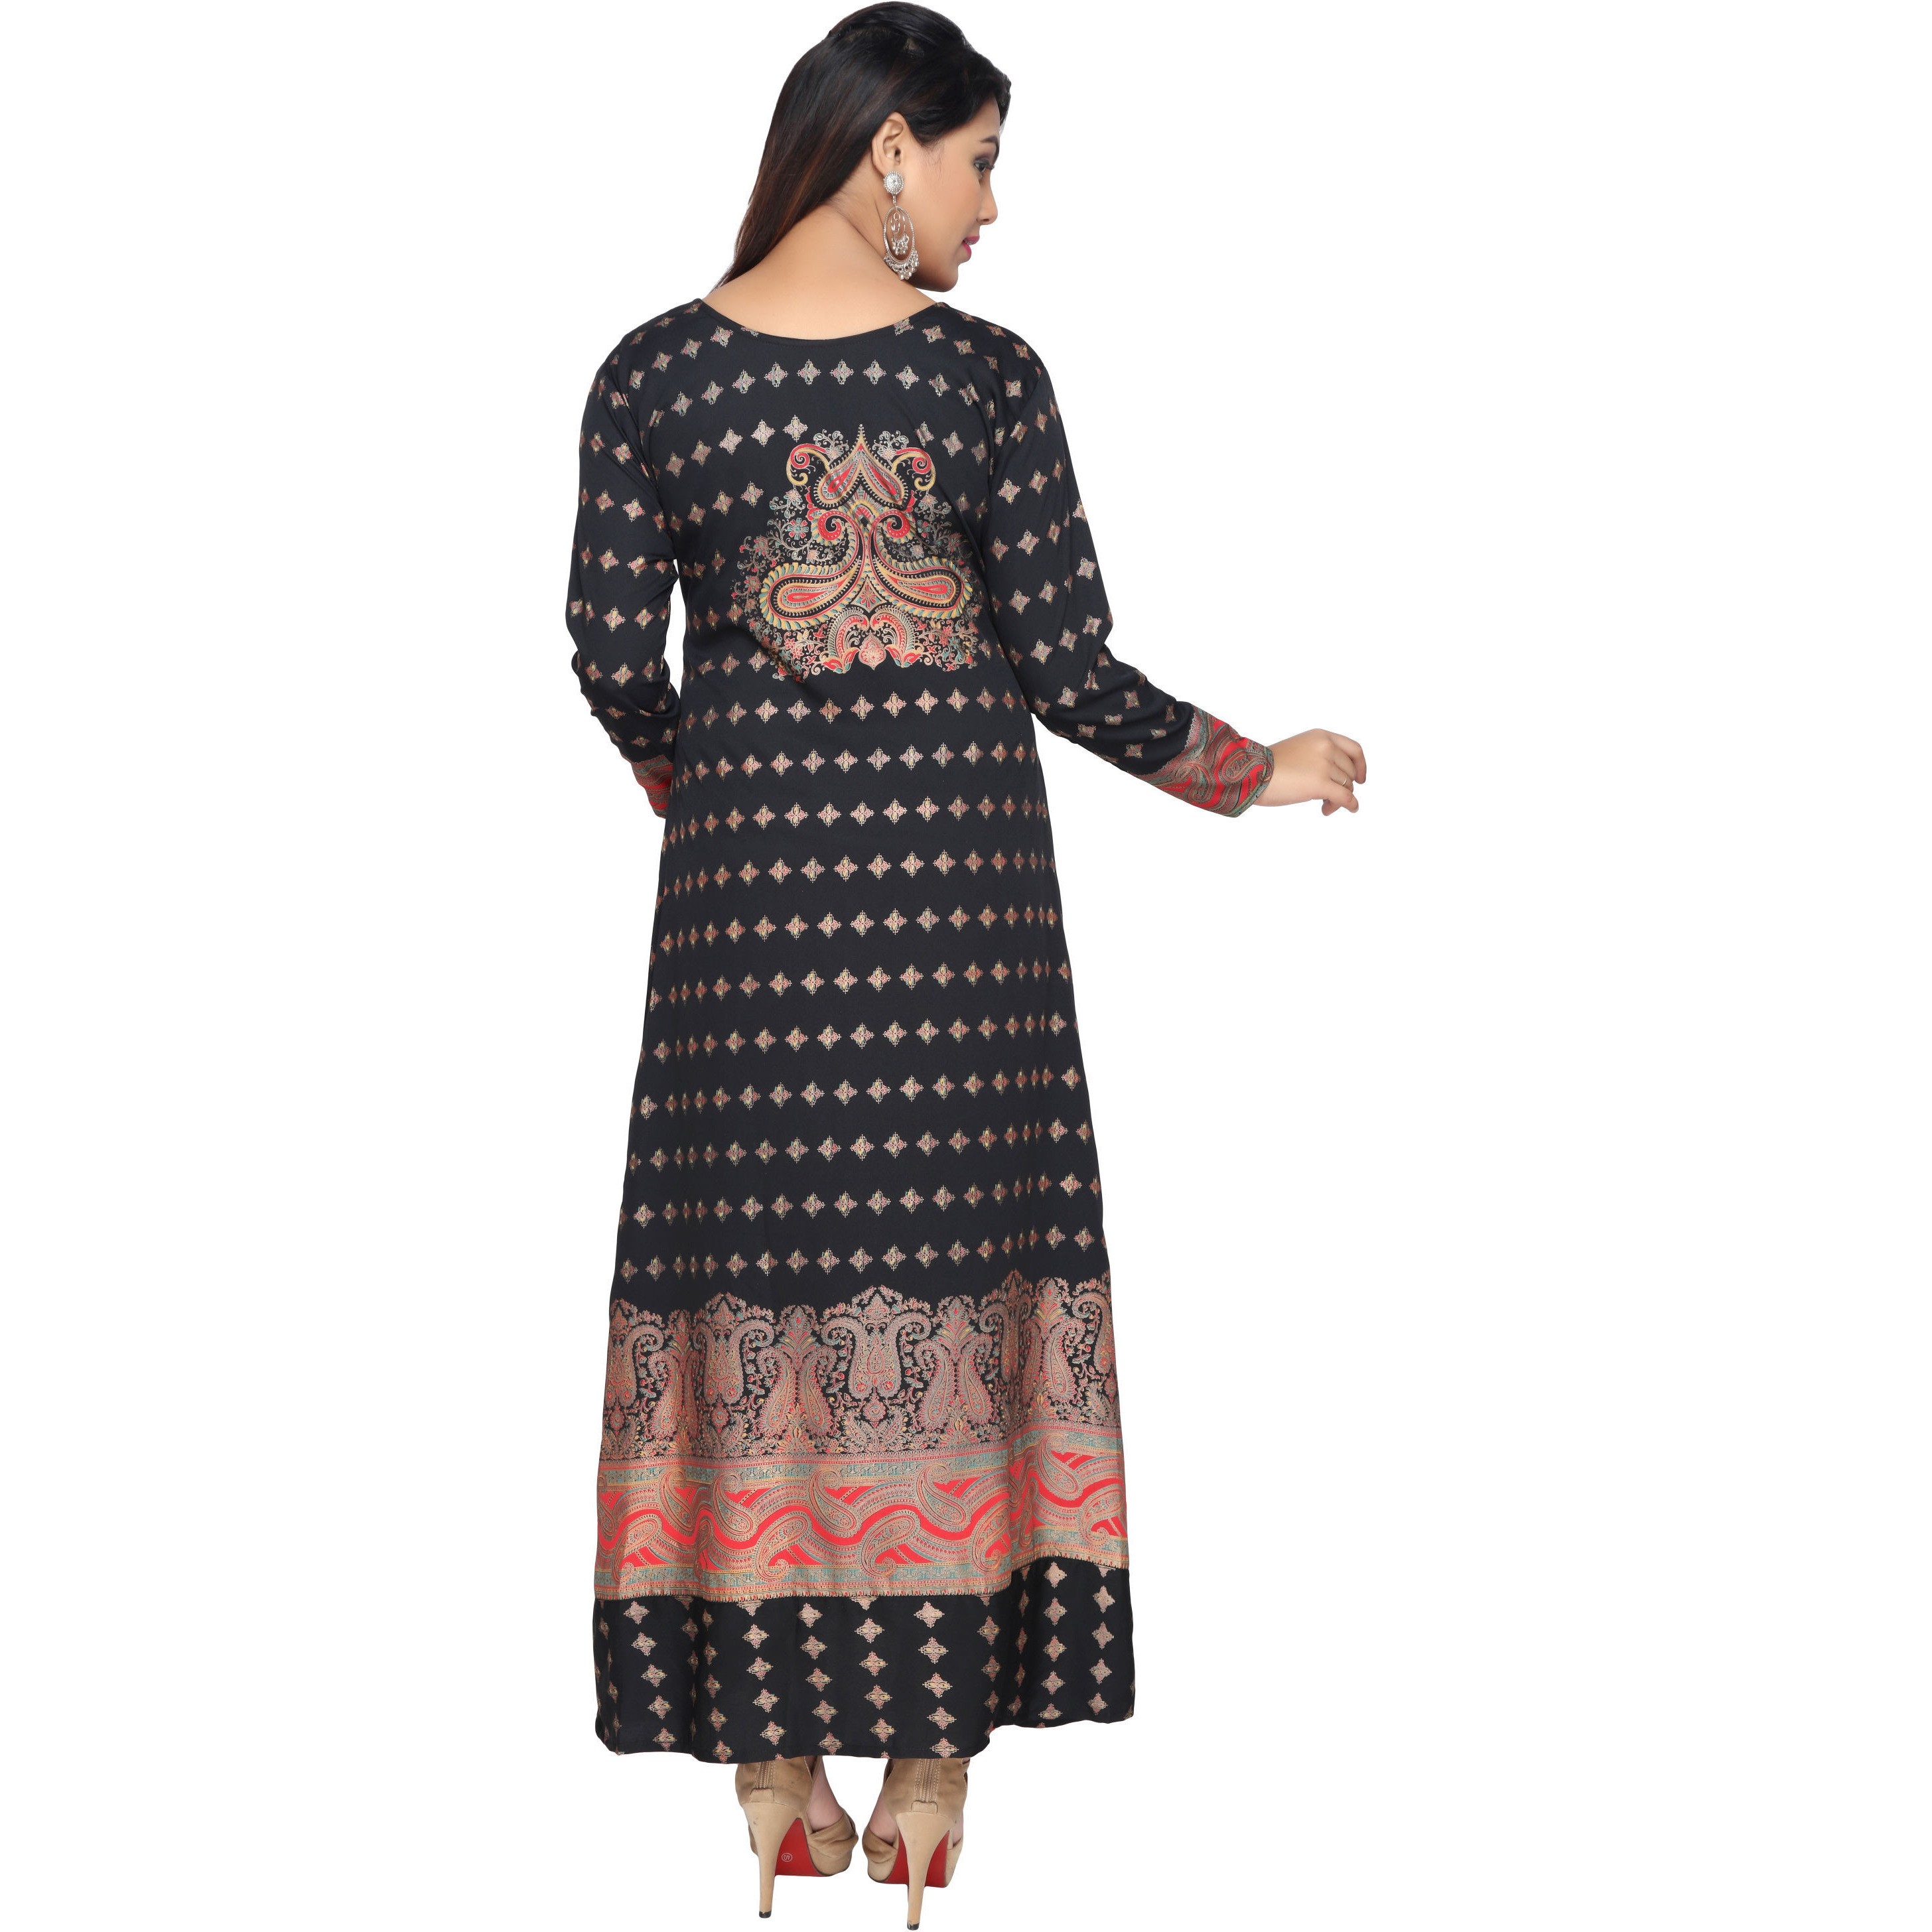 TrendyFashionMall Black Gold Print Kaftan Abaya Maxi Dress KFT01021 S-38 (Size:42 - LARGE, Color:TFMKFT01021-BLACK)